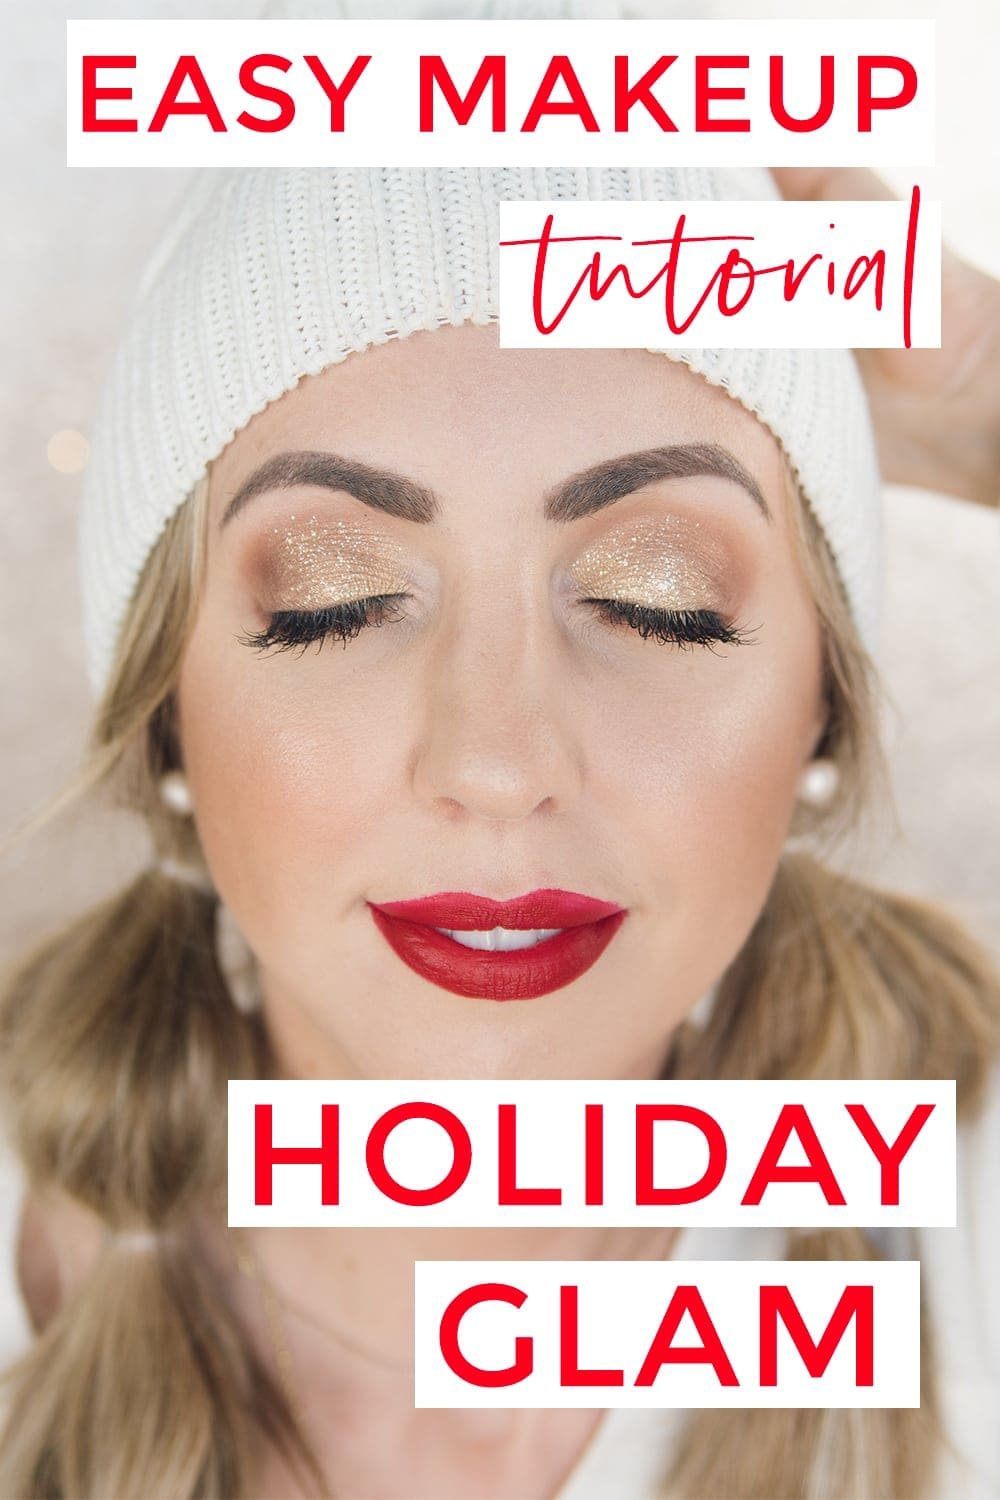 Easy holiday makeup tutorial #makeuptutorial #holidaymakeup #christmas #makeuptutorial #beauty #beautyblogger